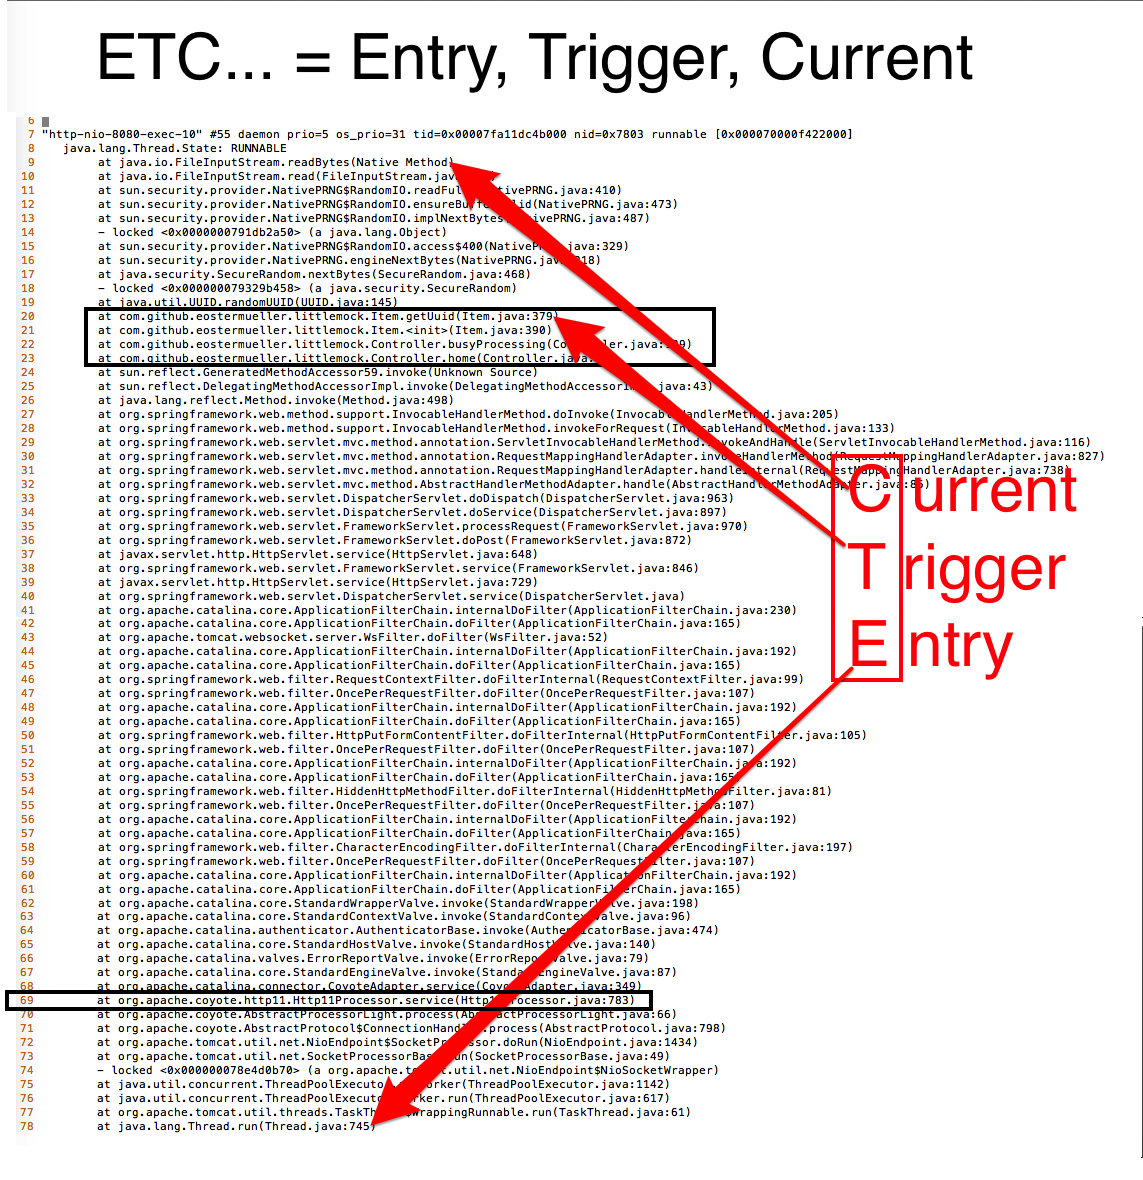 Figure 1 -- A big and somewhat scary stack trace taken from a jstack thread dump.  Are Java developers supposed to understand all of this? No, but they can easily learn the Entry, Trigger, and Current landmarks.